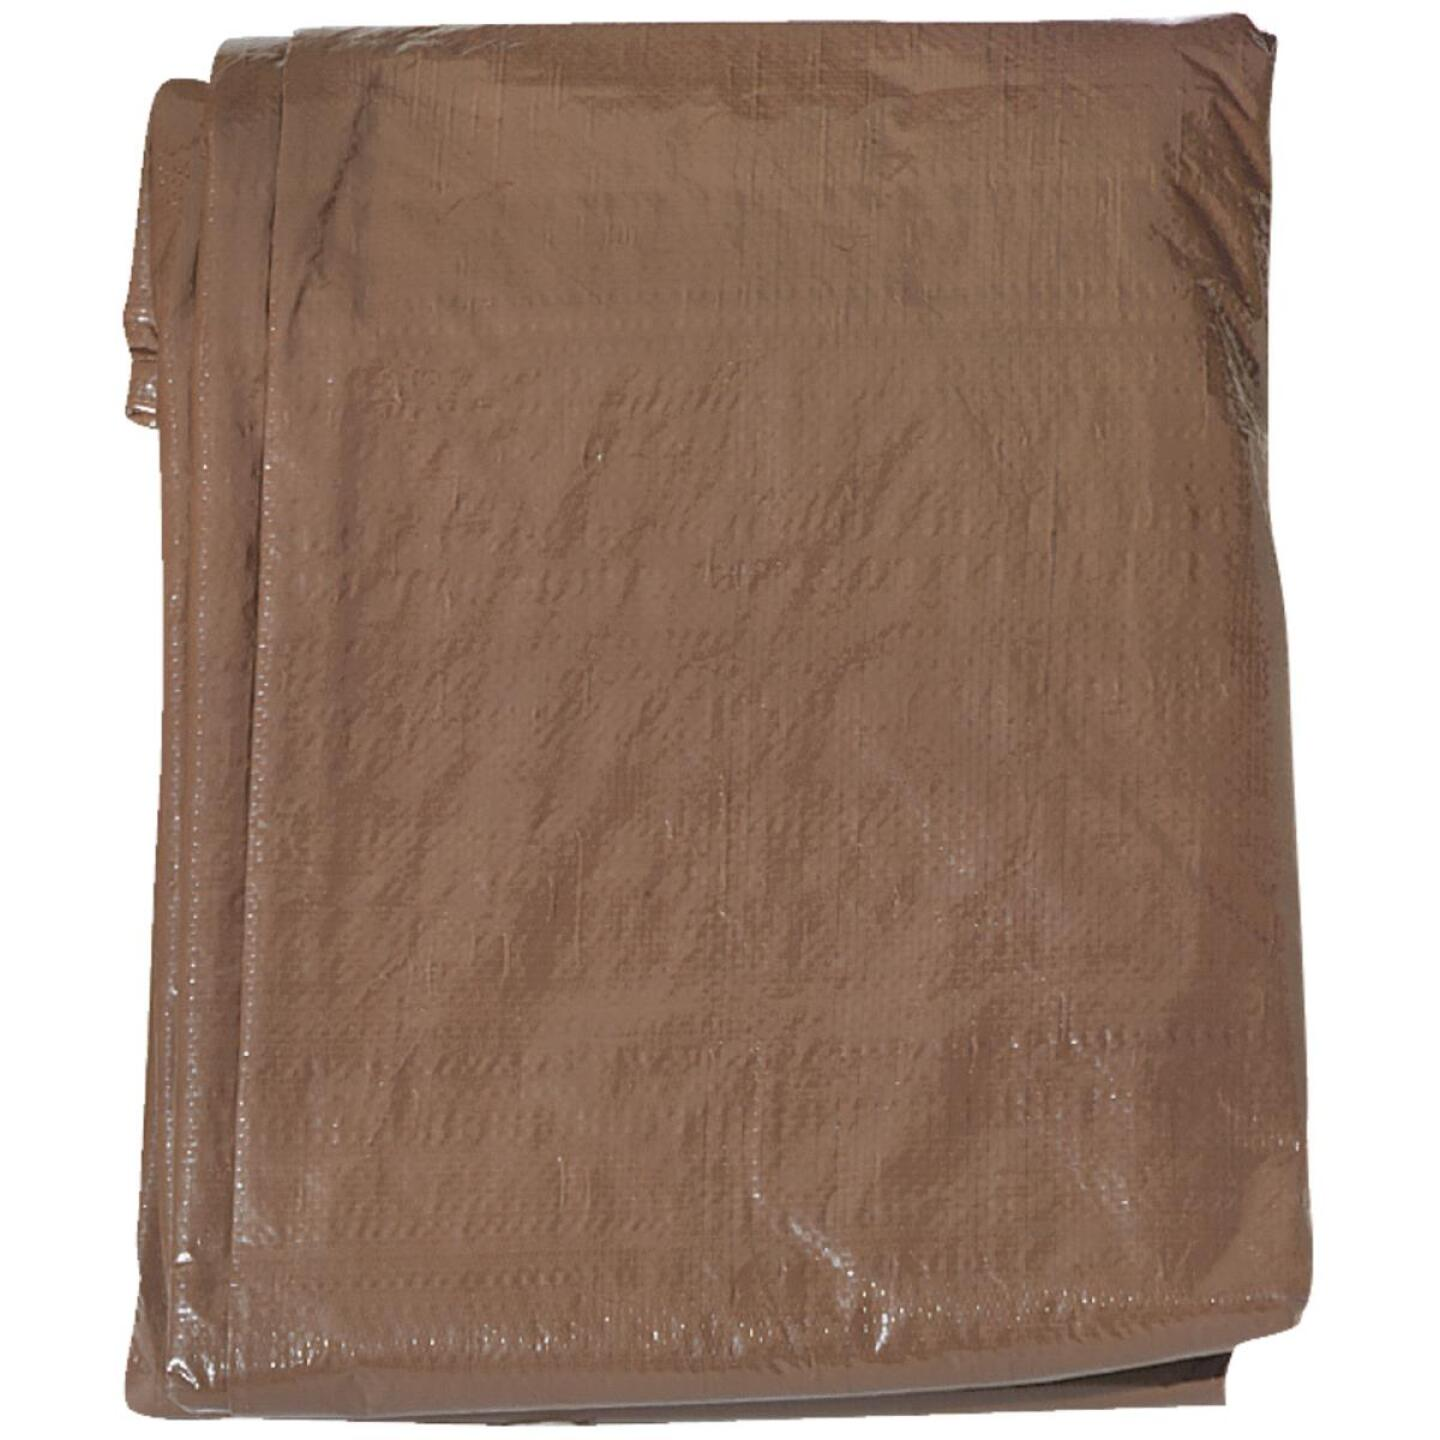 Do it Green/Brown Woven 16 Ft. x 20 Ft. Medium Duty Poly Tarp Image 2